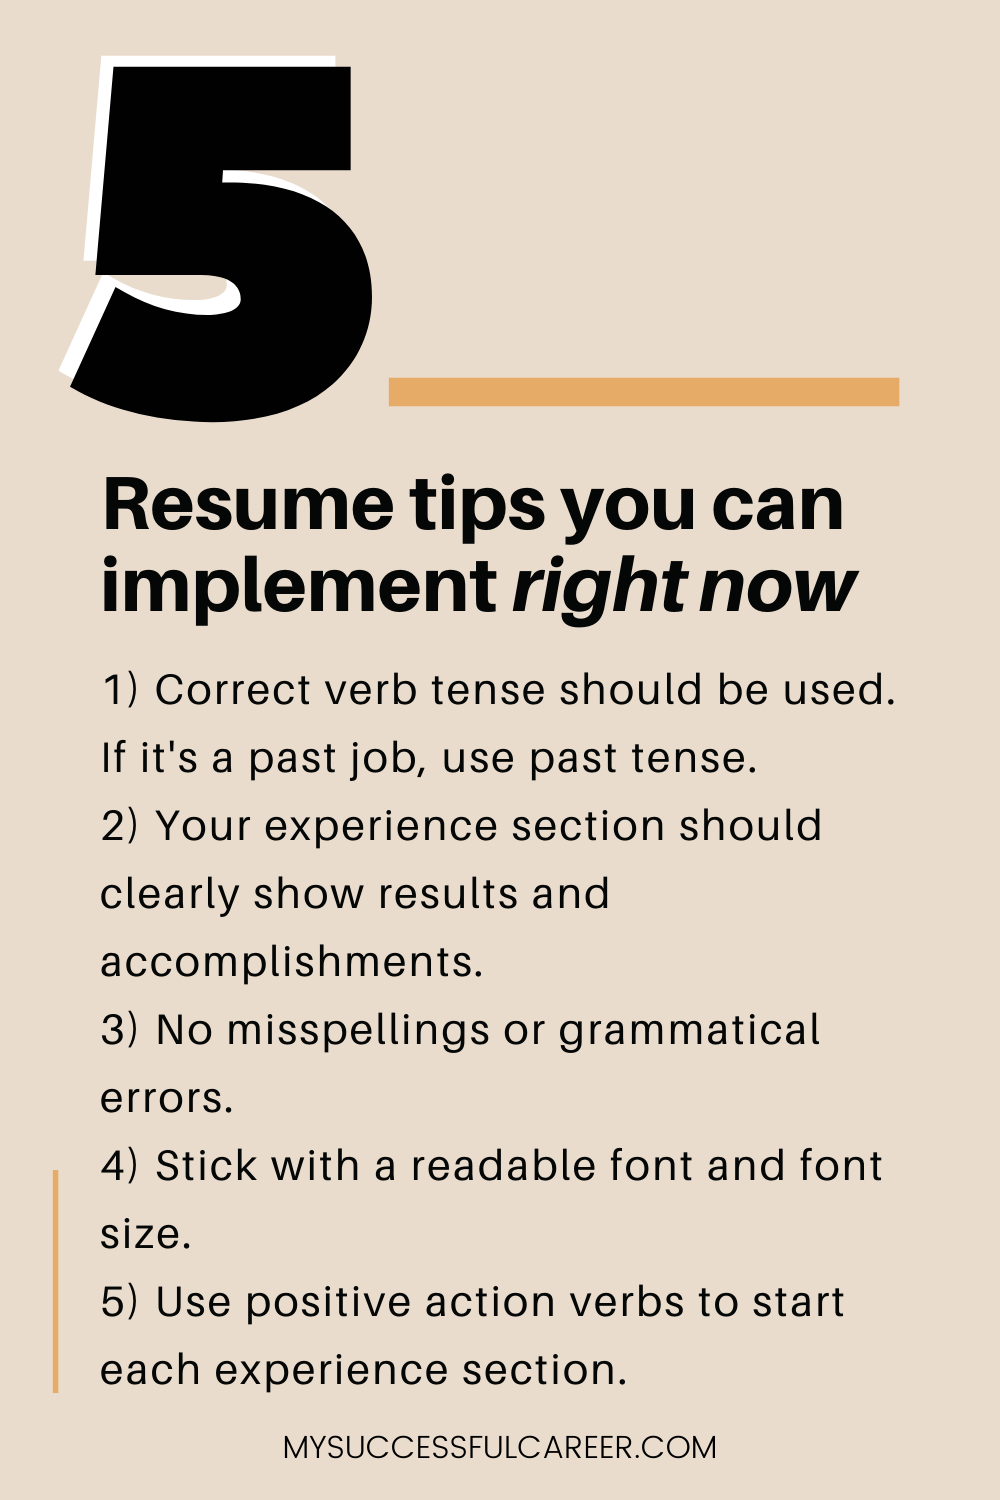 Writing a resume can be very hard work. Knock out some of